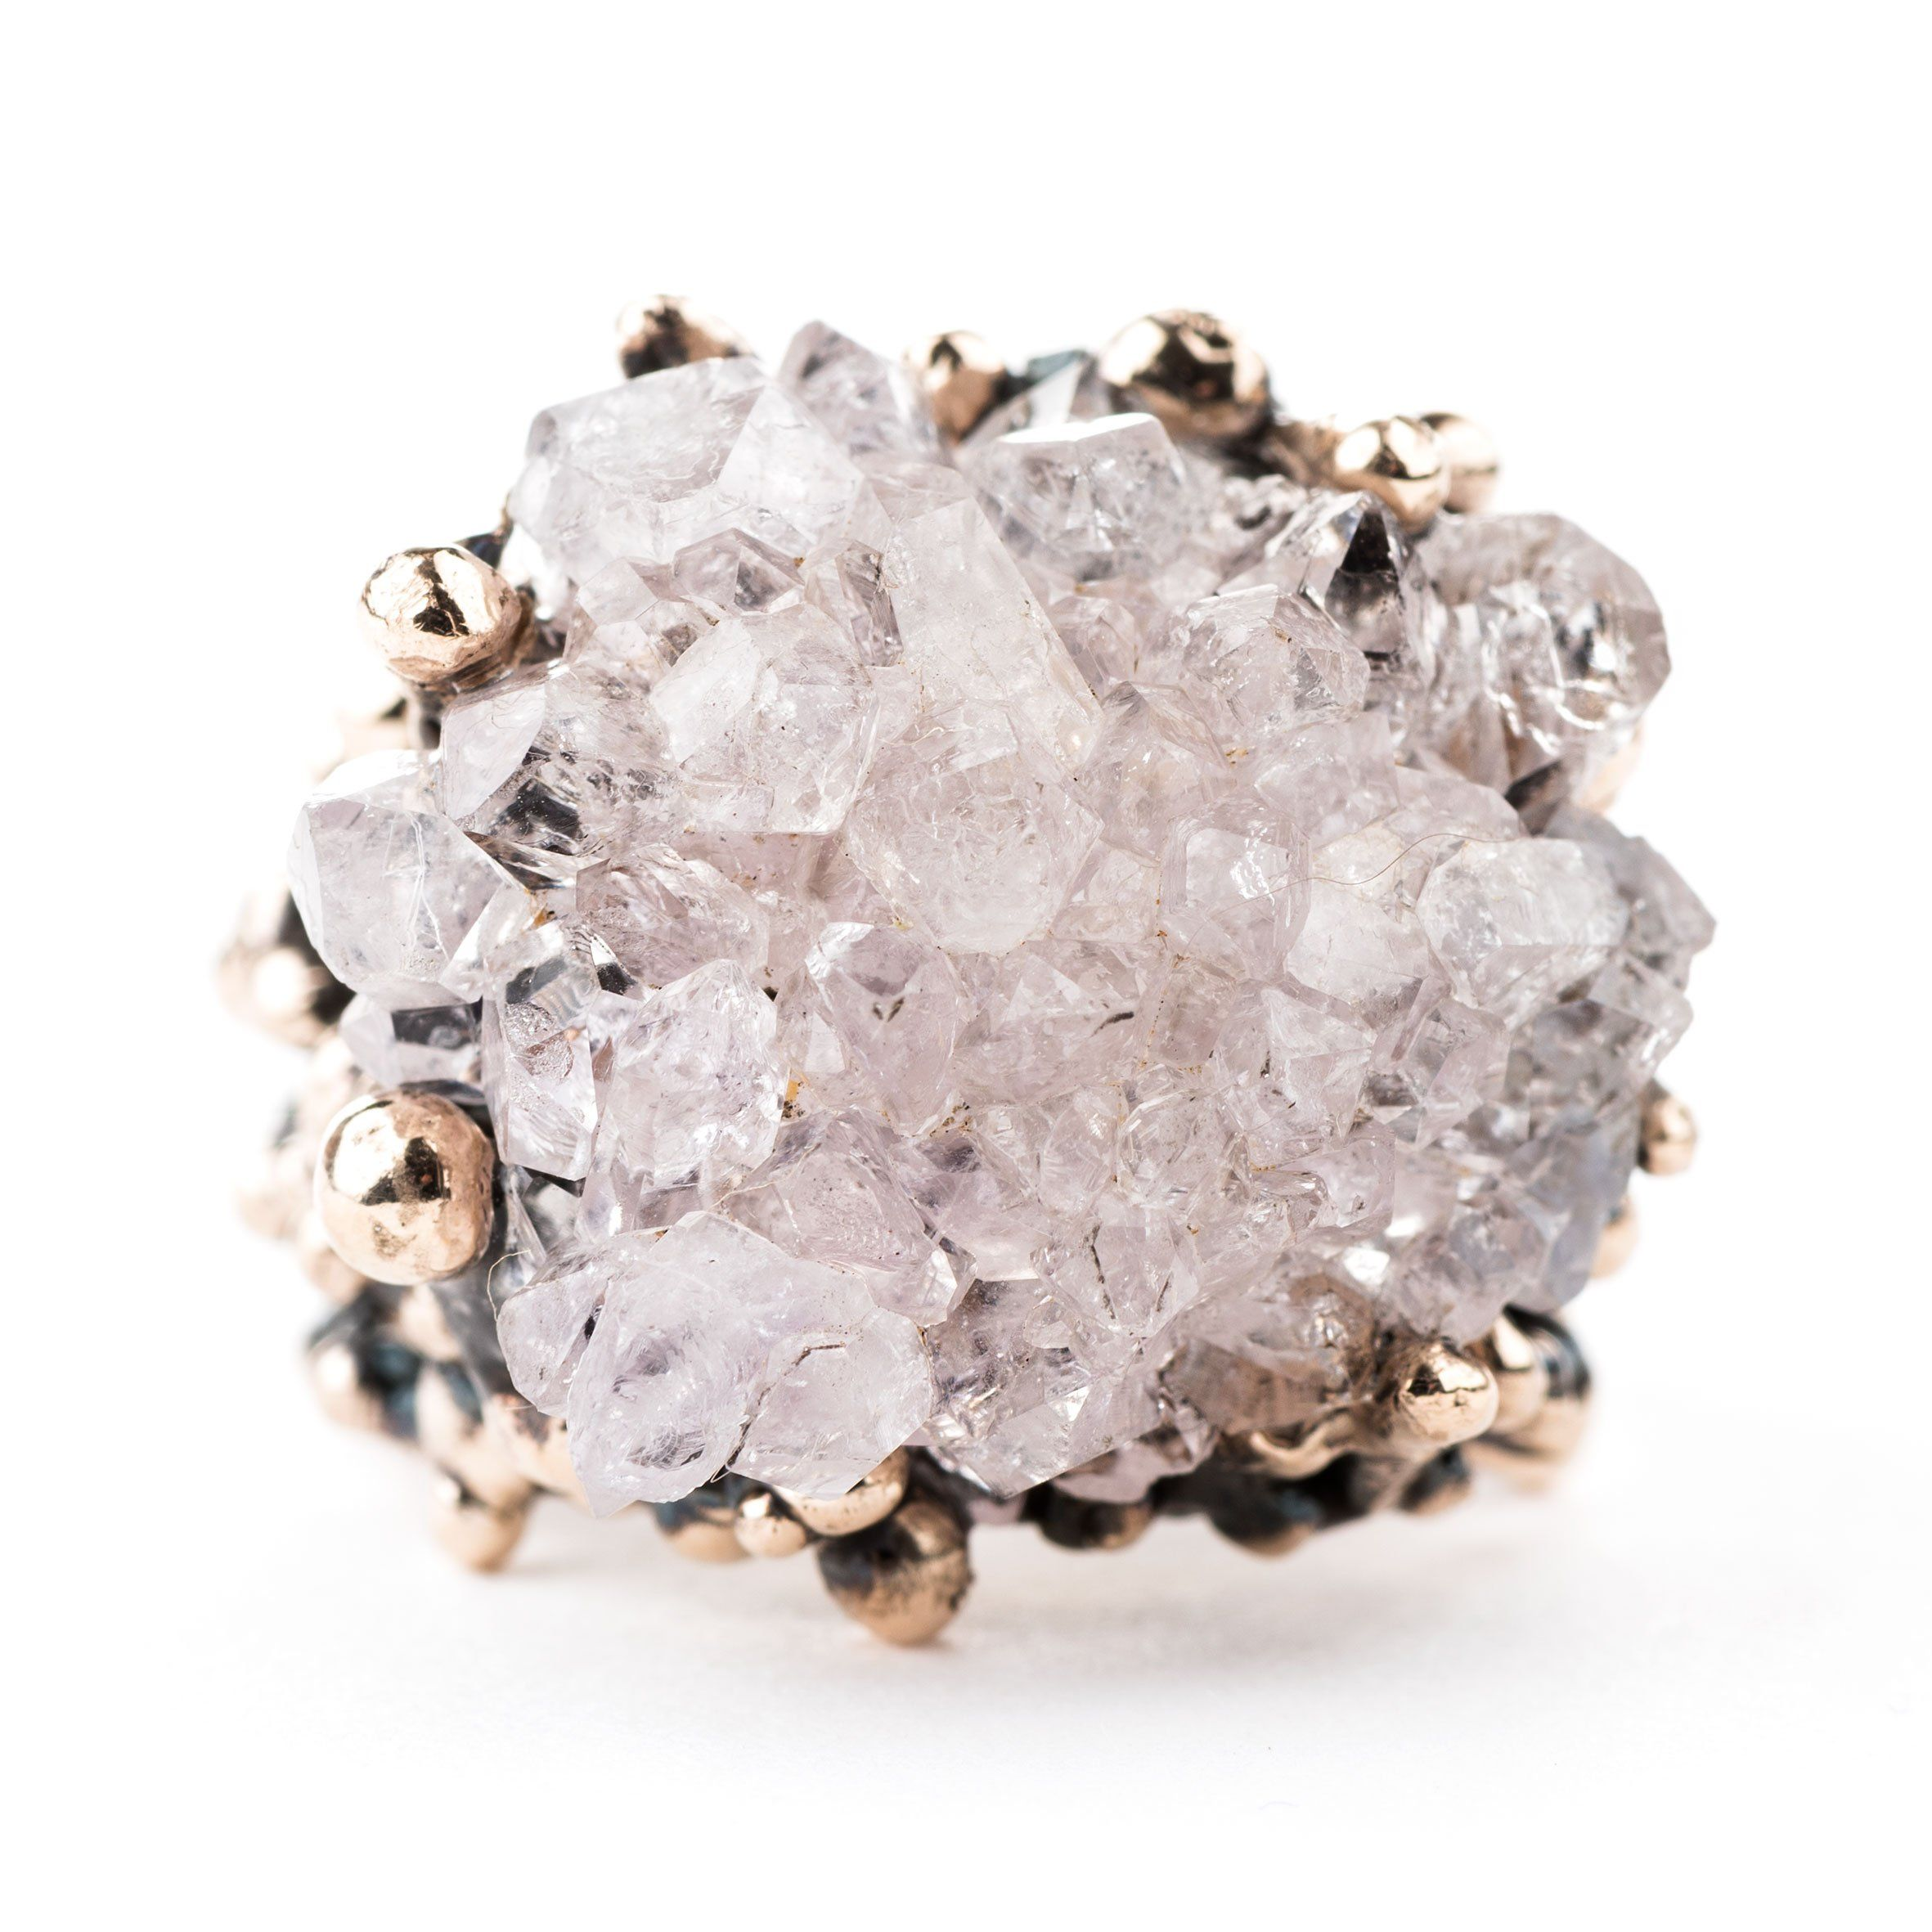 rose electroformed lavender q silvia black designs tourmaline ring jewelry peluso creations quartz rings s sold